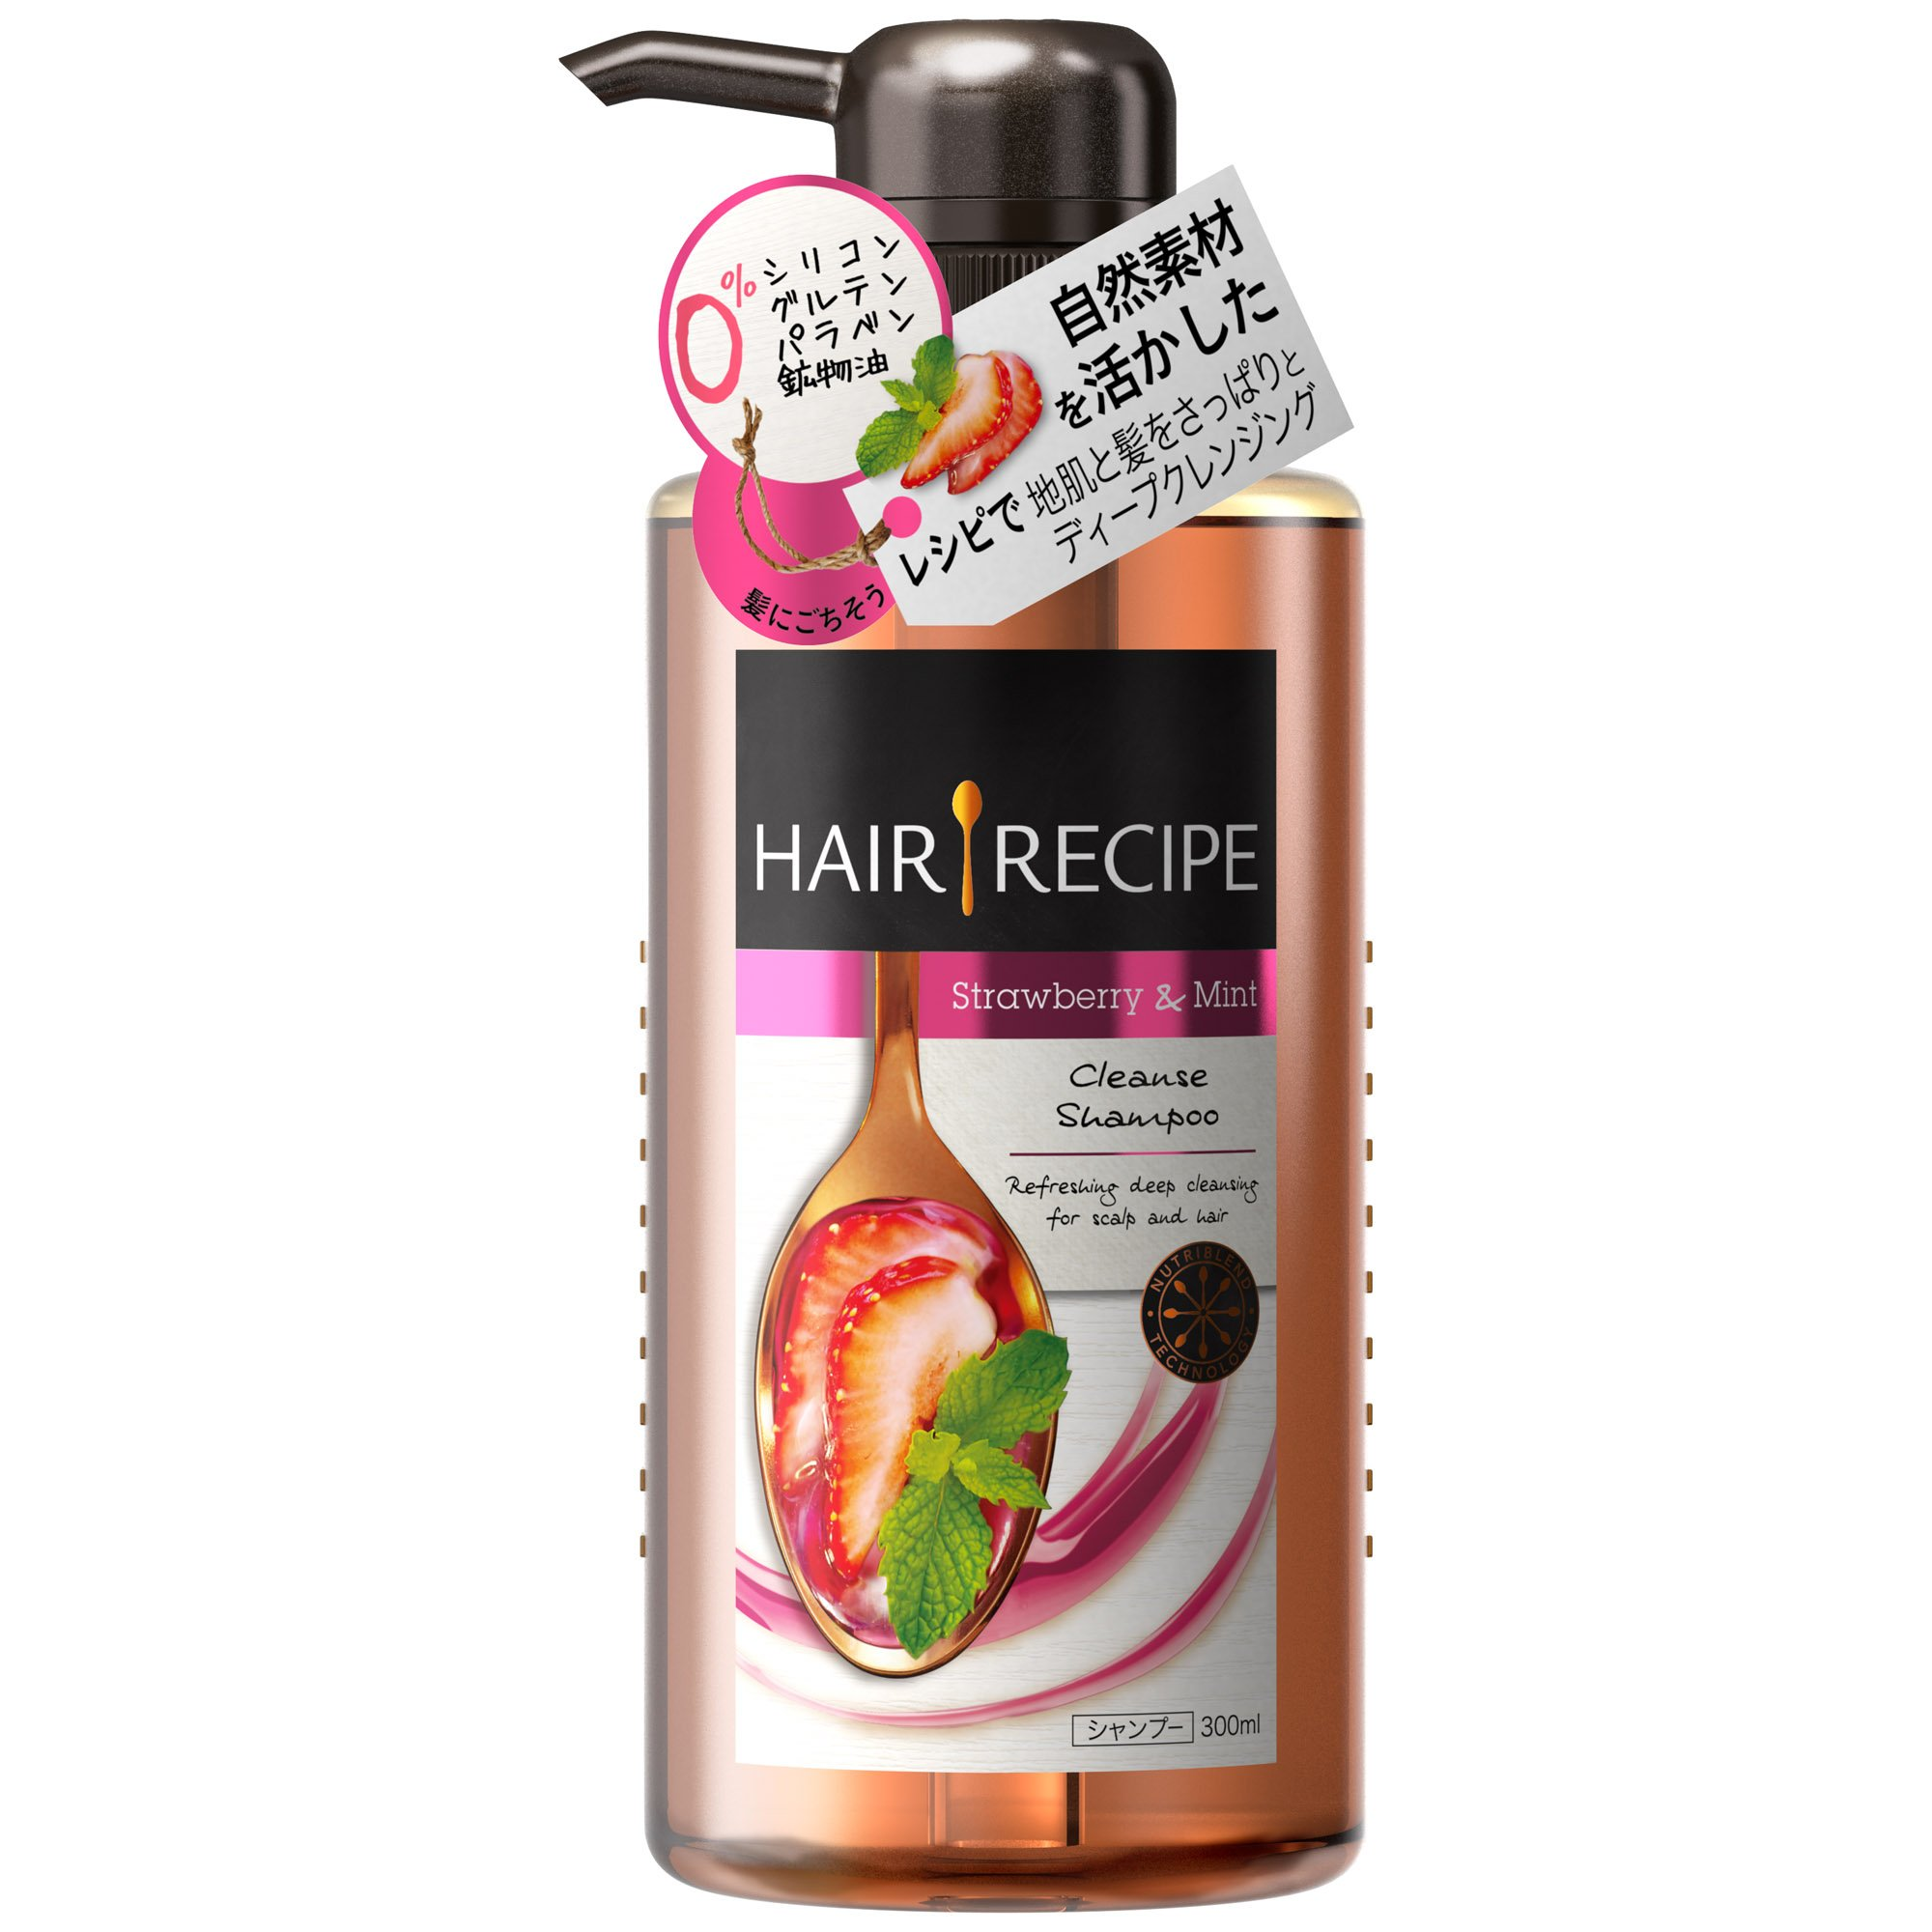 Japan Health and Beauty - Hair shampoo recipes mint blend cleansing recipes body 300ml *AF27* by HAIR GOODS